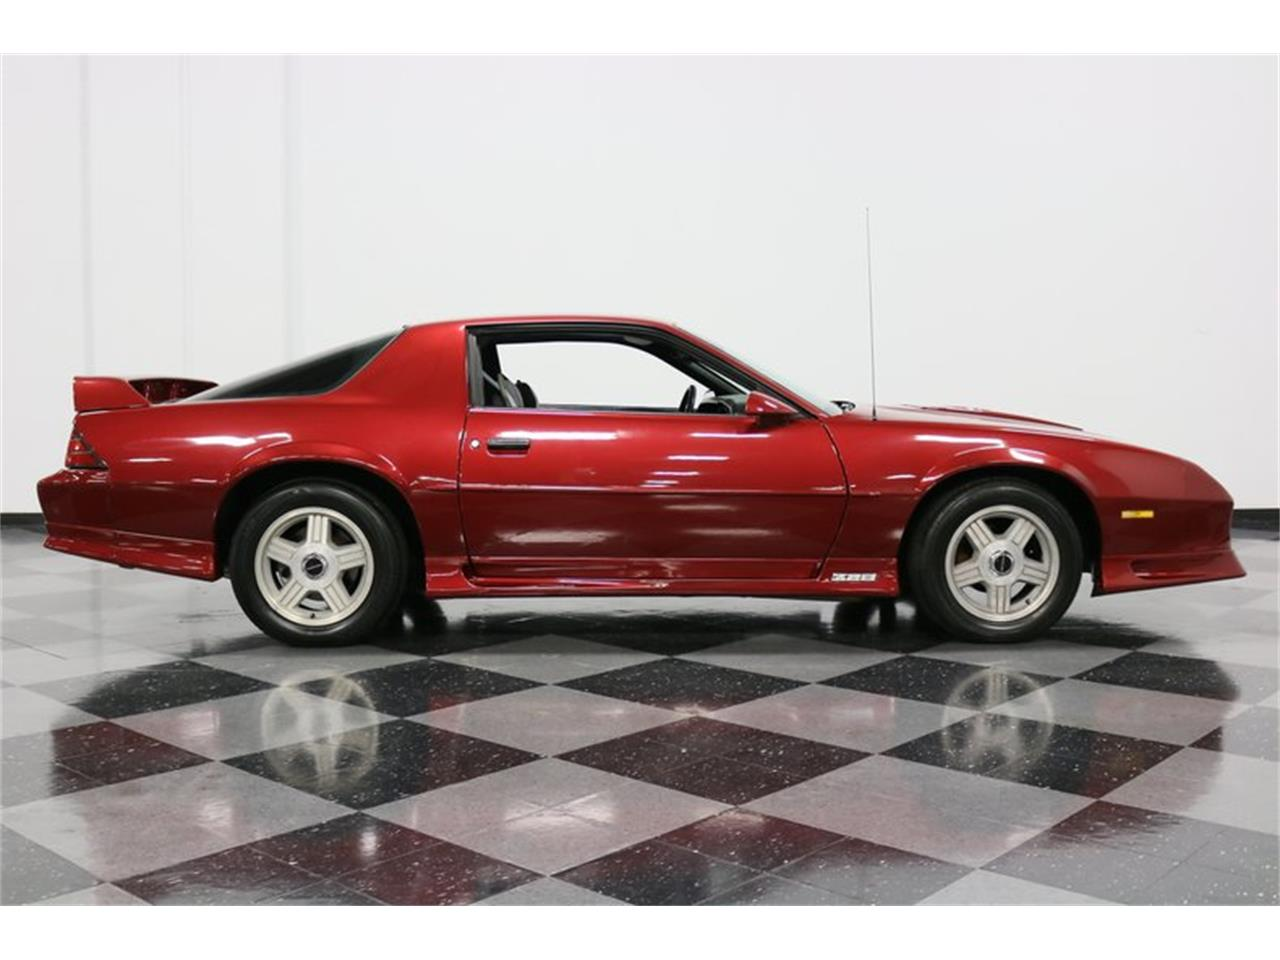 Large Picture of 1991 Chevrolet Camaro - $11,995.00 Offered by Streetside Classics - Dallas / Fort Worth - PBLJ